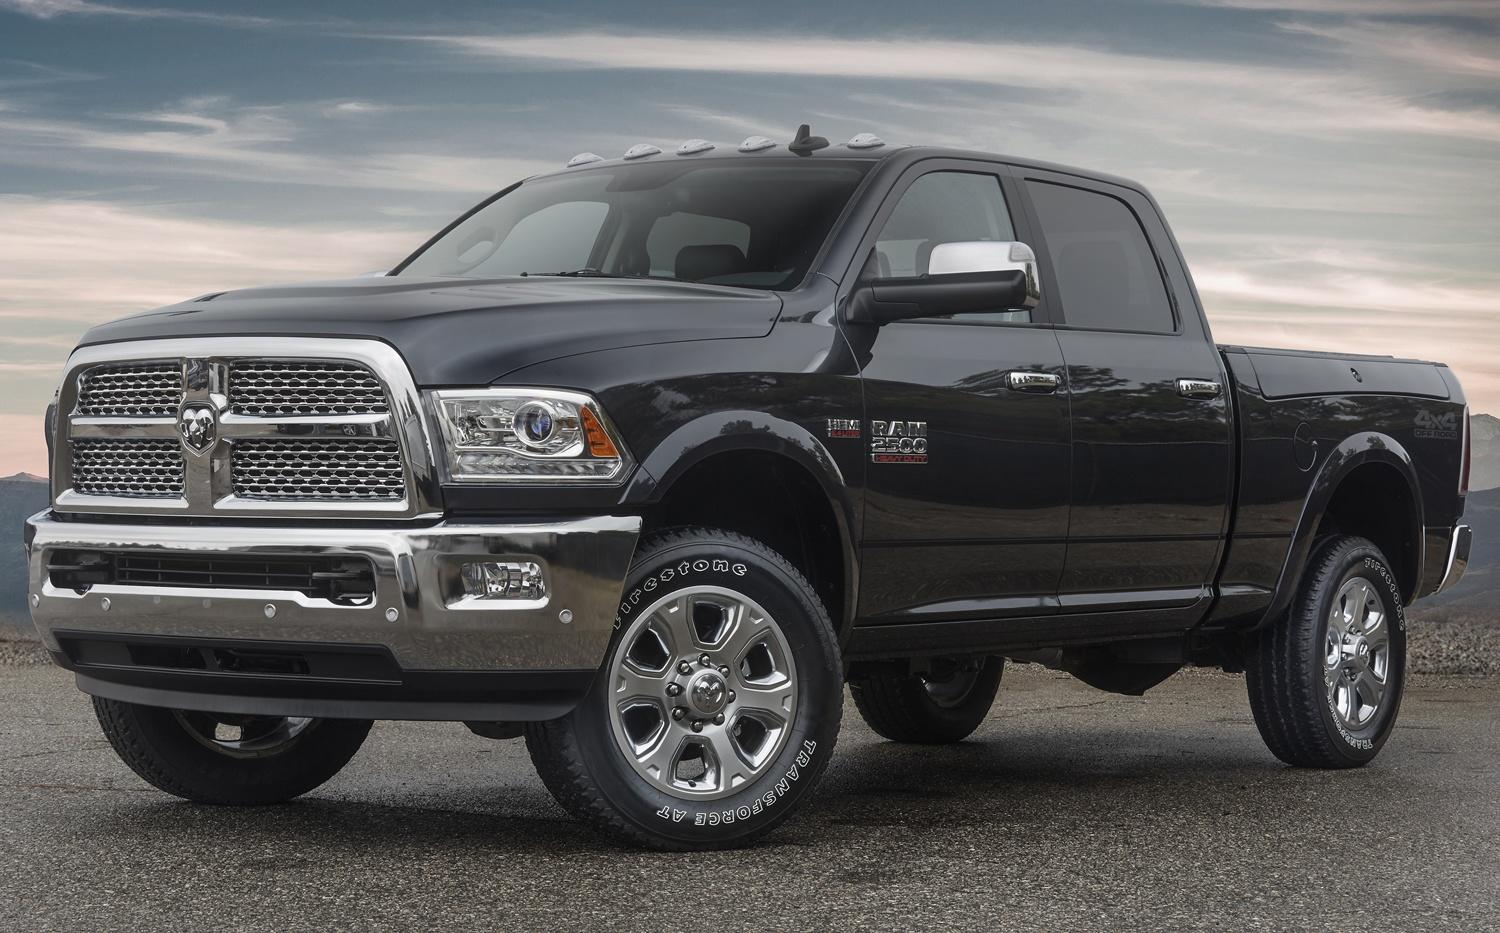 A 4×4 Off-Road package helps the Ram 2500 go farther off the beaten path